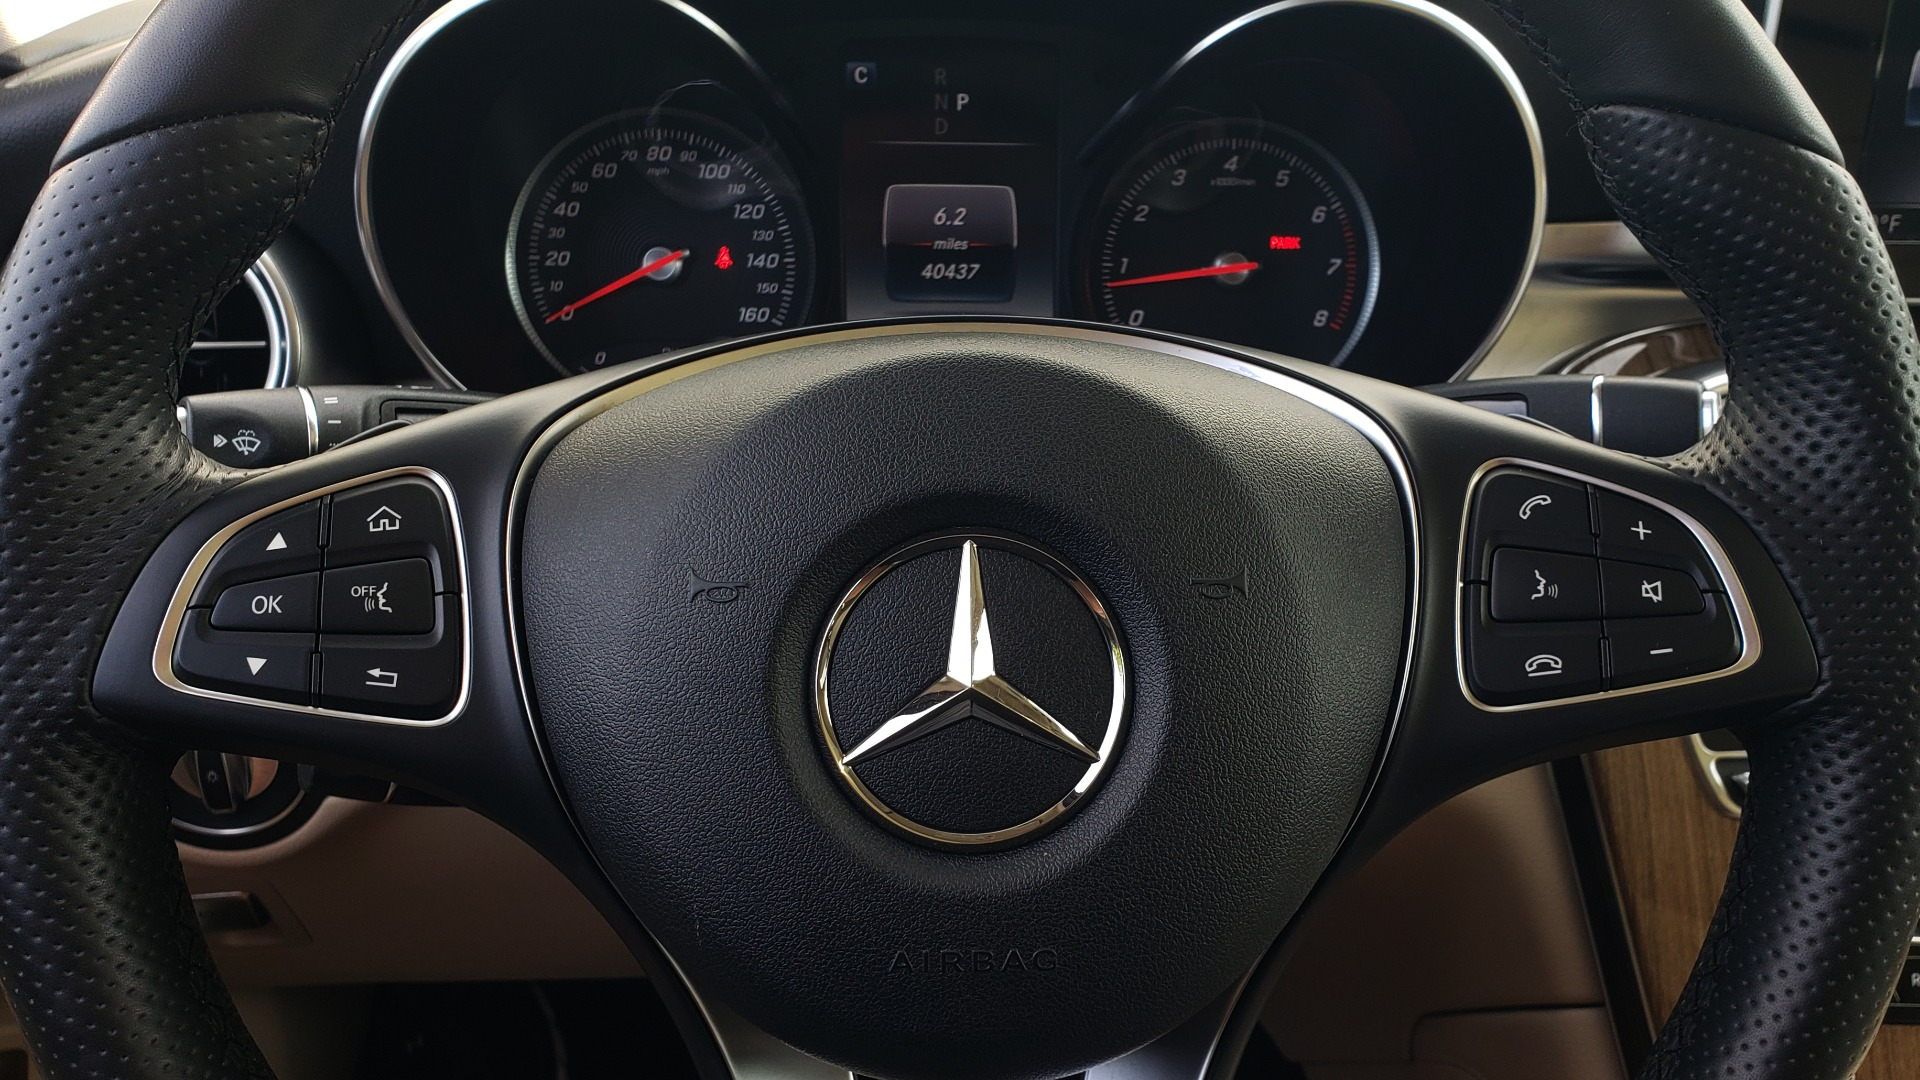 Used 2018 Mercedes-Benz GLC 300 4MATIC / PREM PKG / PANO-ROOF / APPLE / REARVIEW for sale $33,397 at Formula Imports in Charlotte NC 28227 38